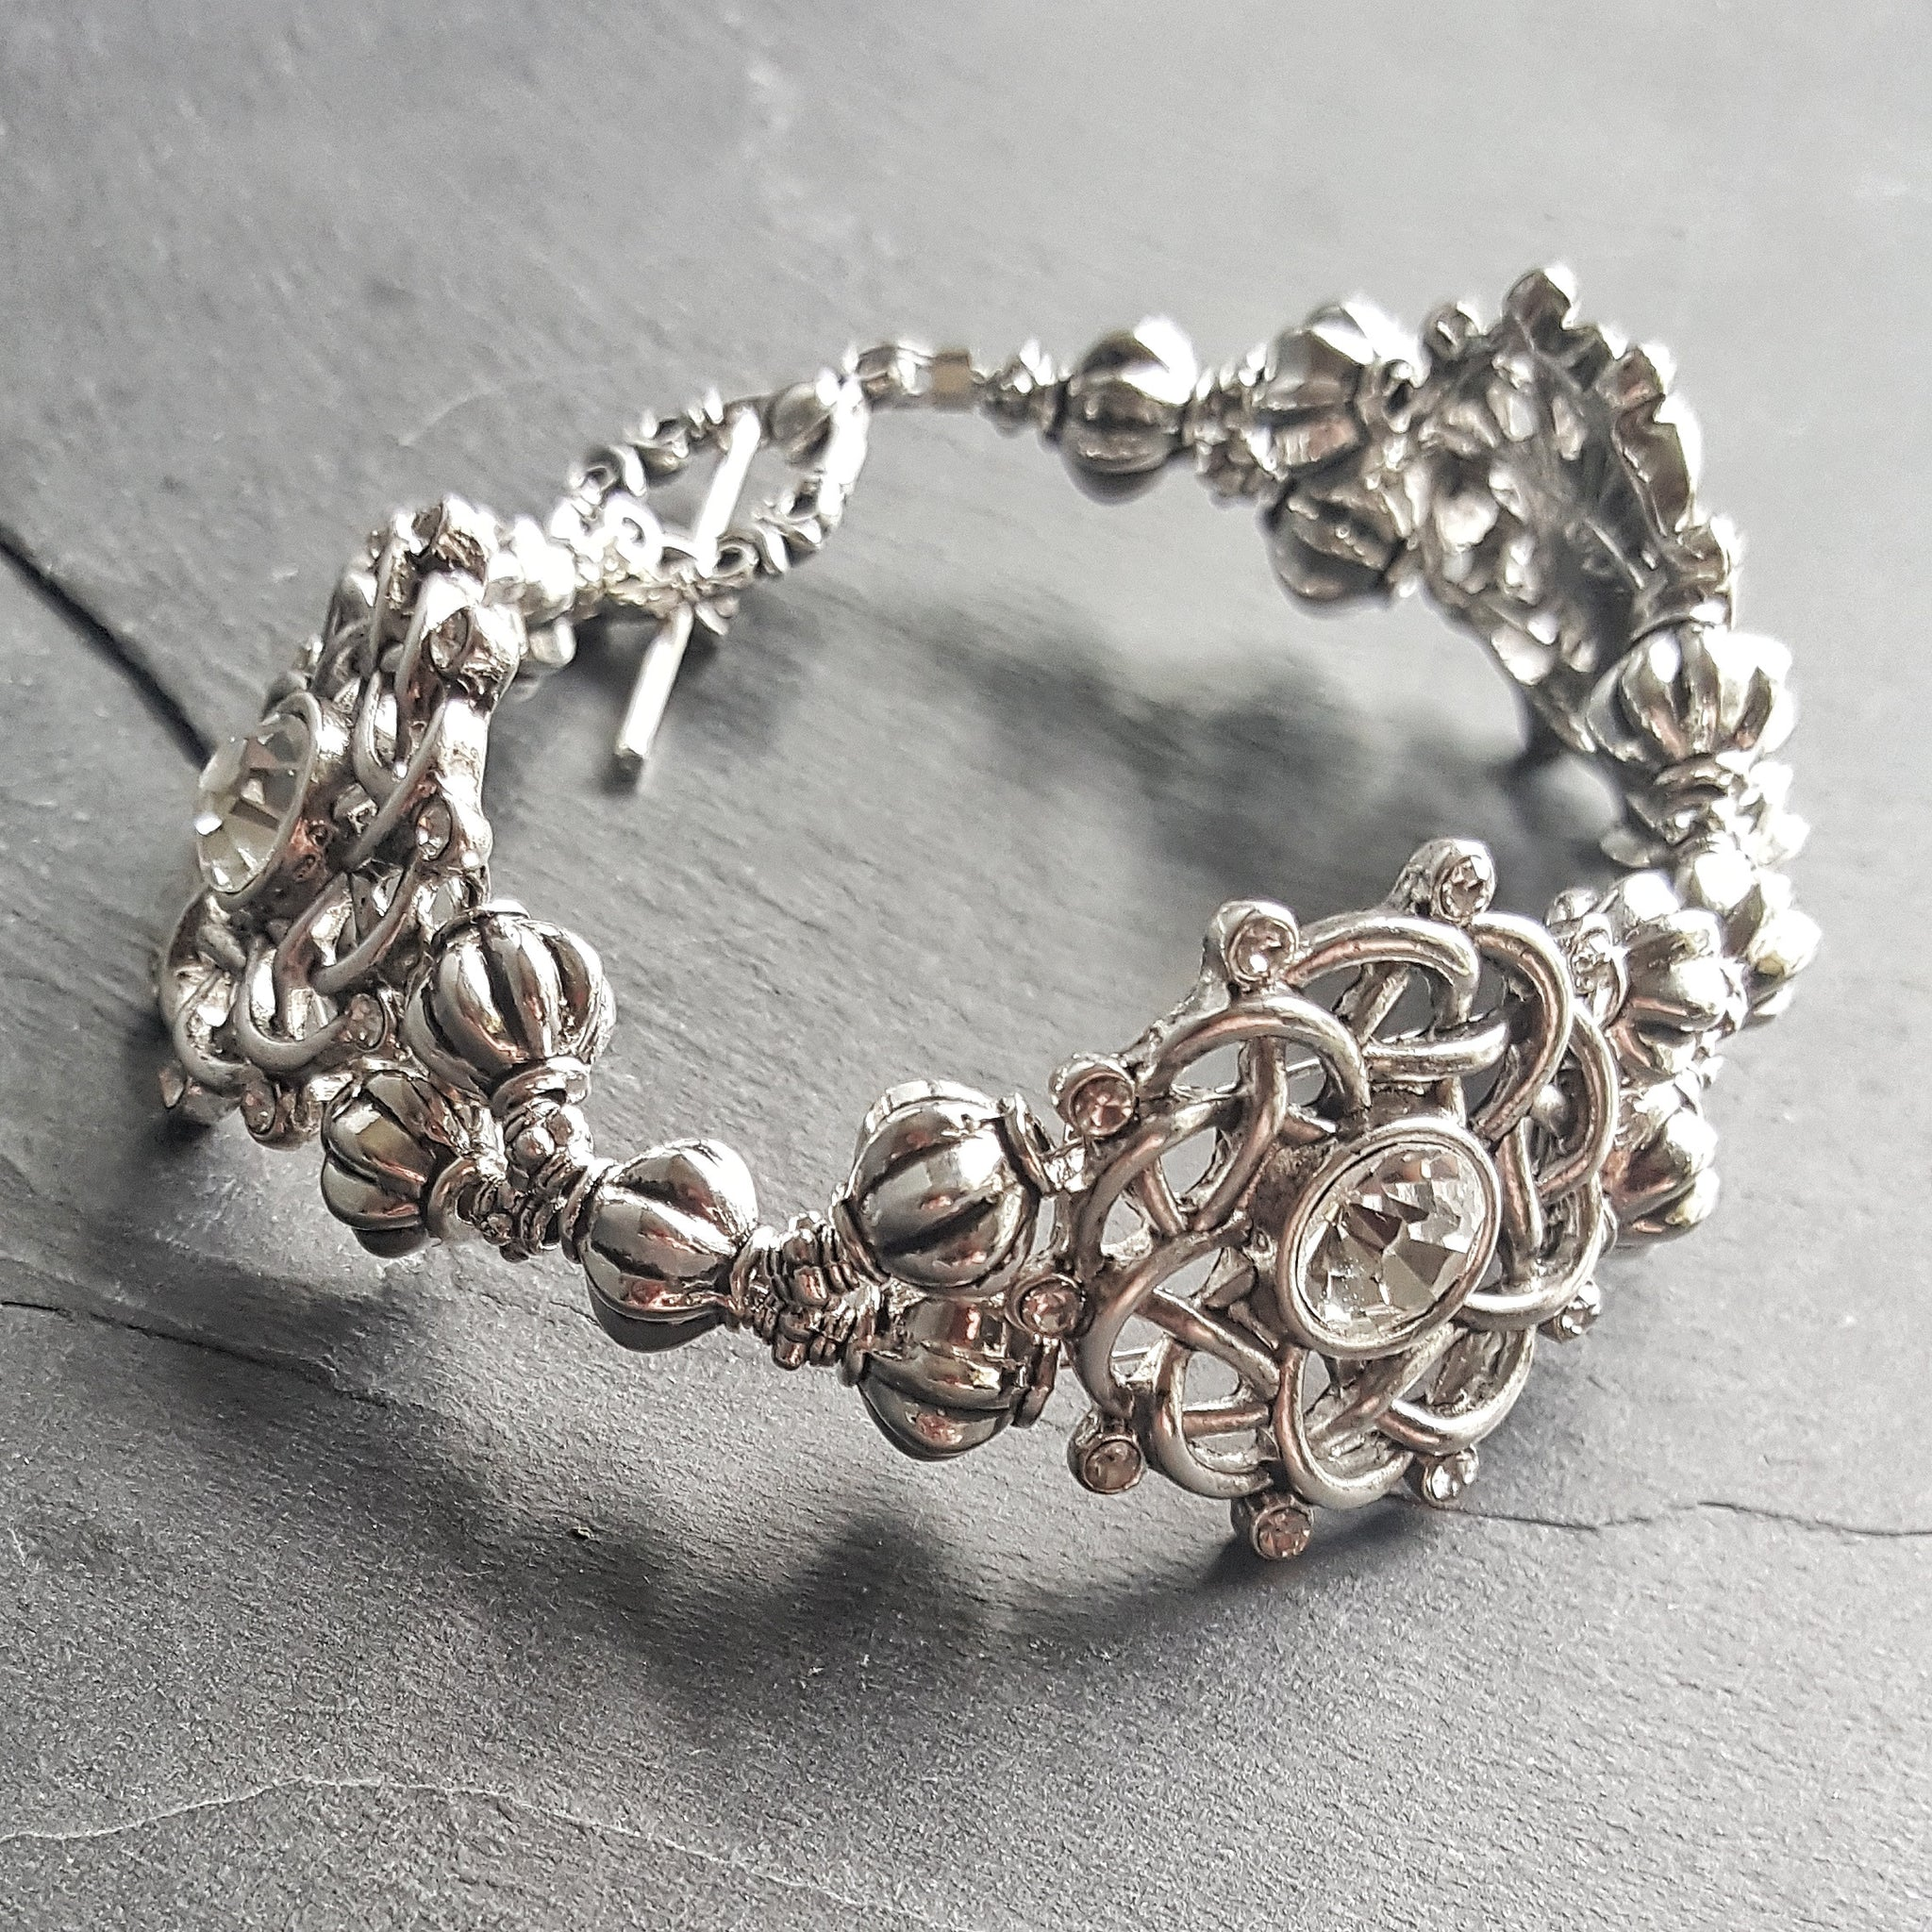 Silver Celtic Knot Cocktail Bracelet Fantasy Jewelry - DRAVYNMOOR